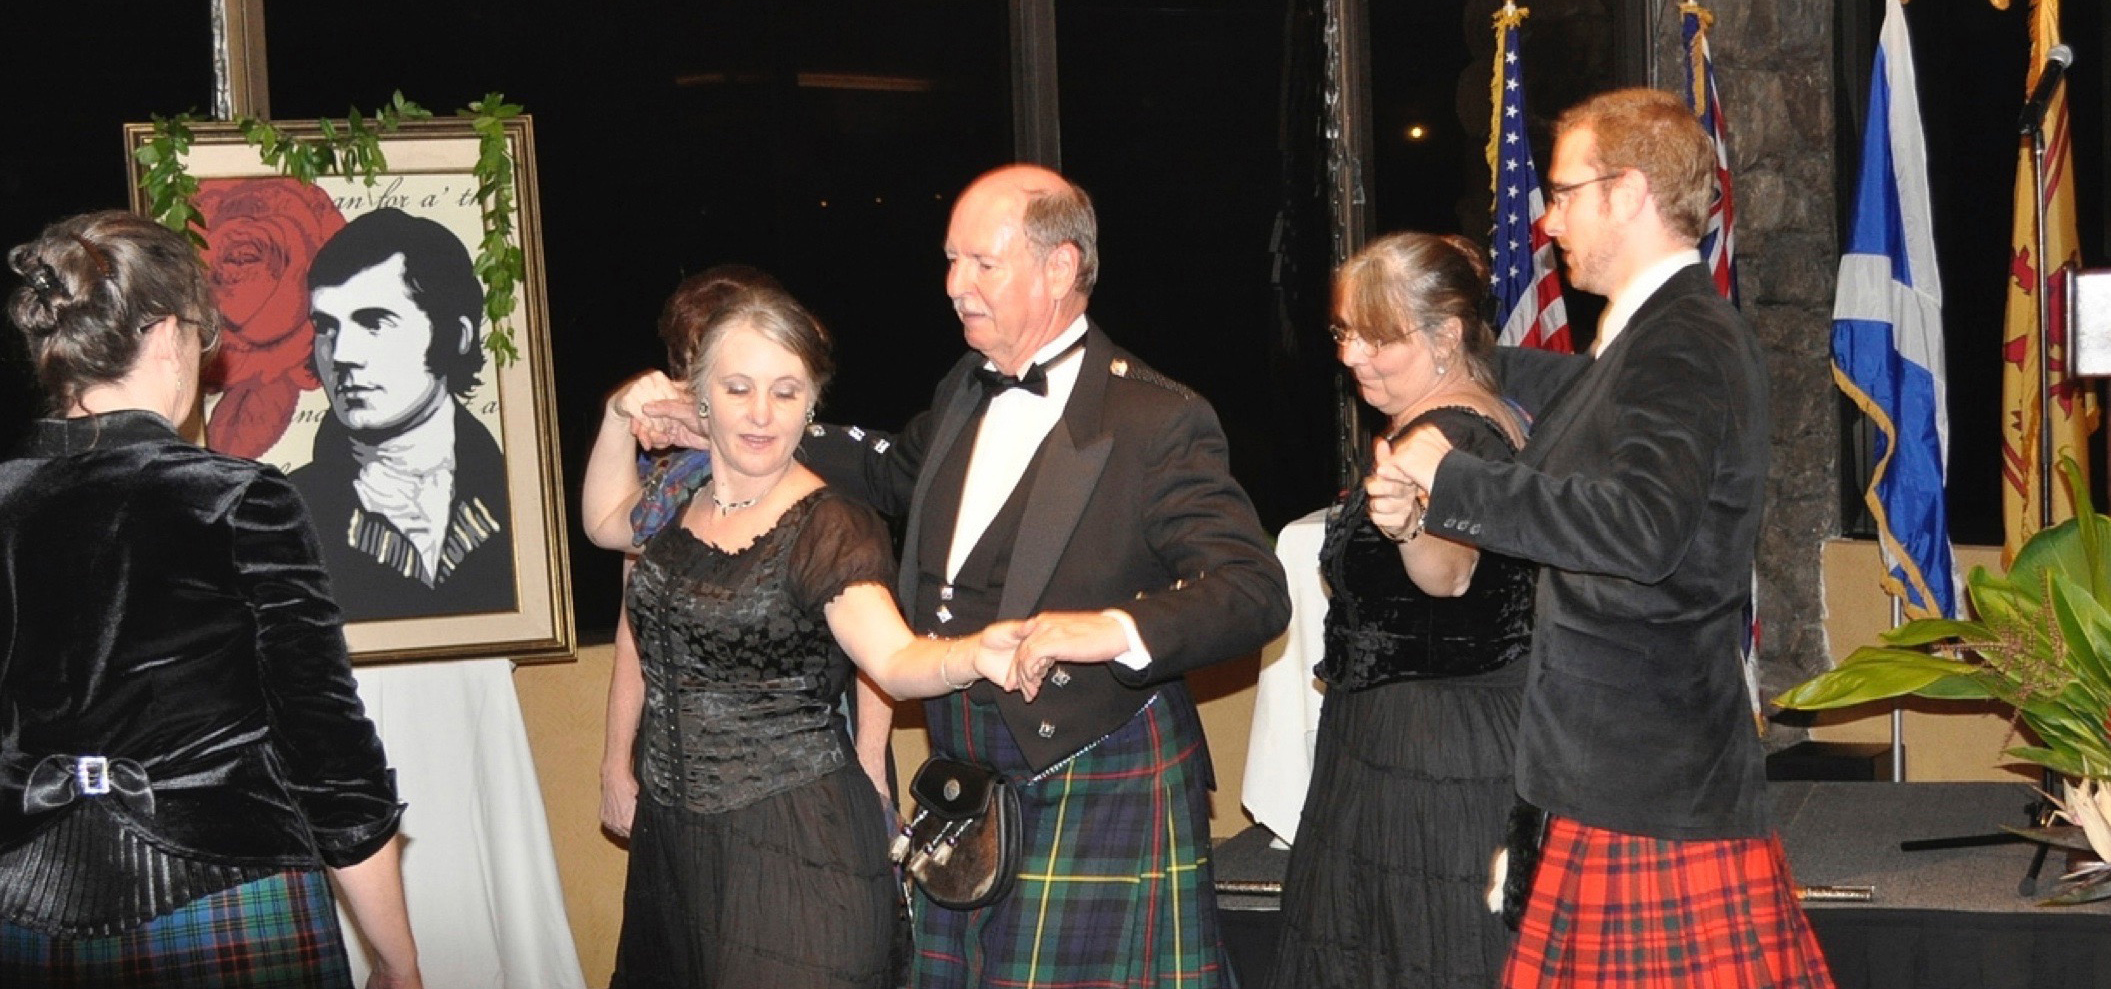 Picture of Scottish dancers at Burns Night